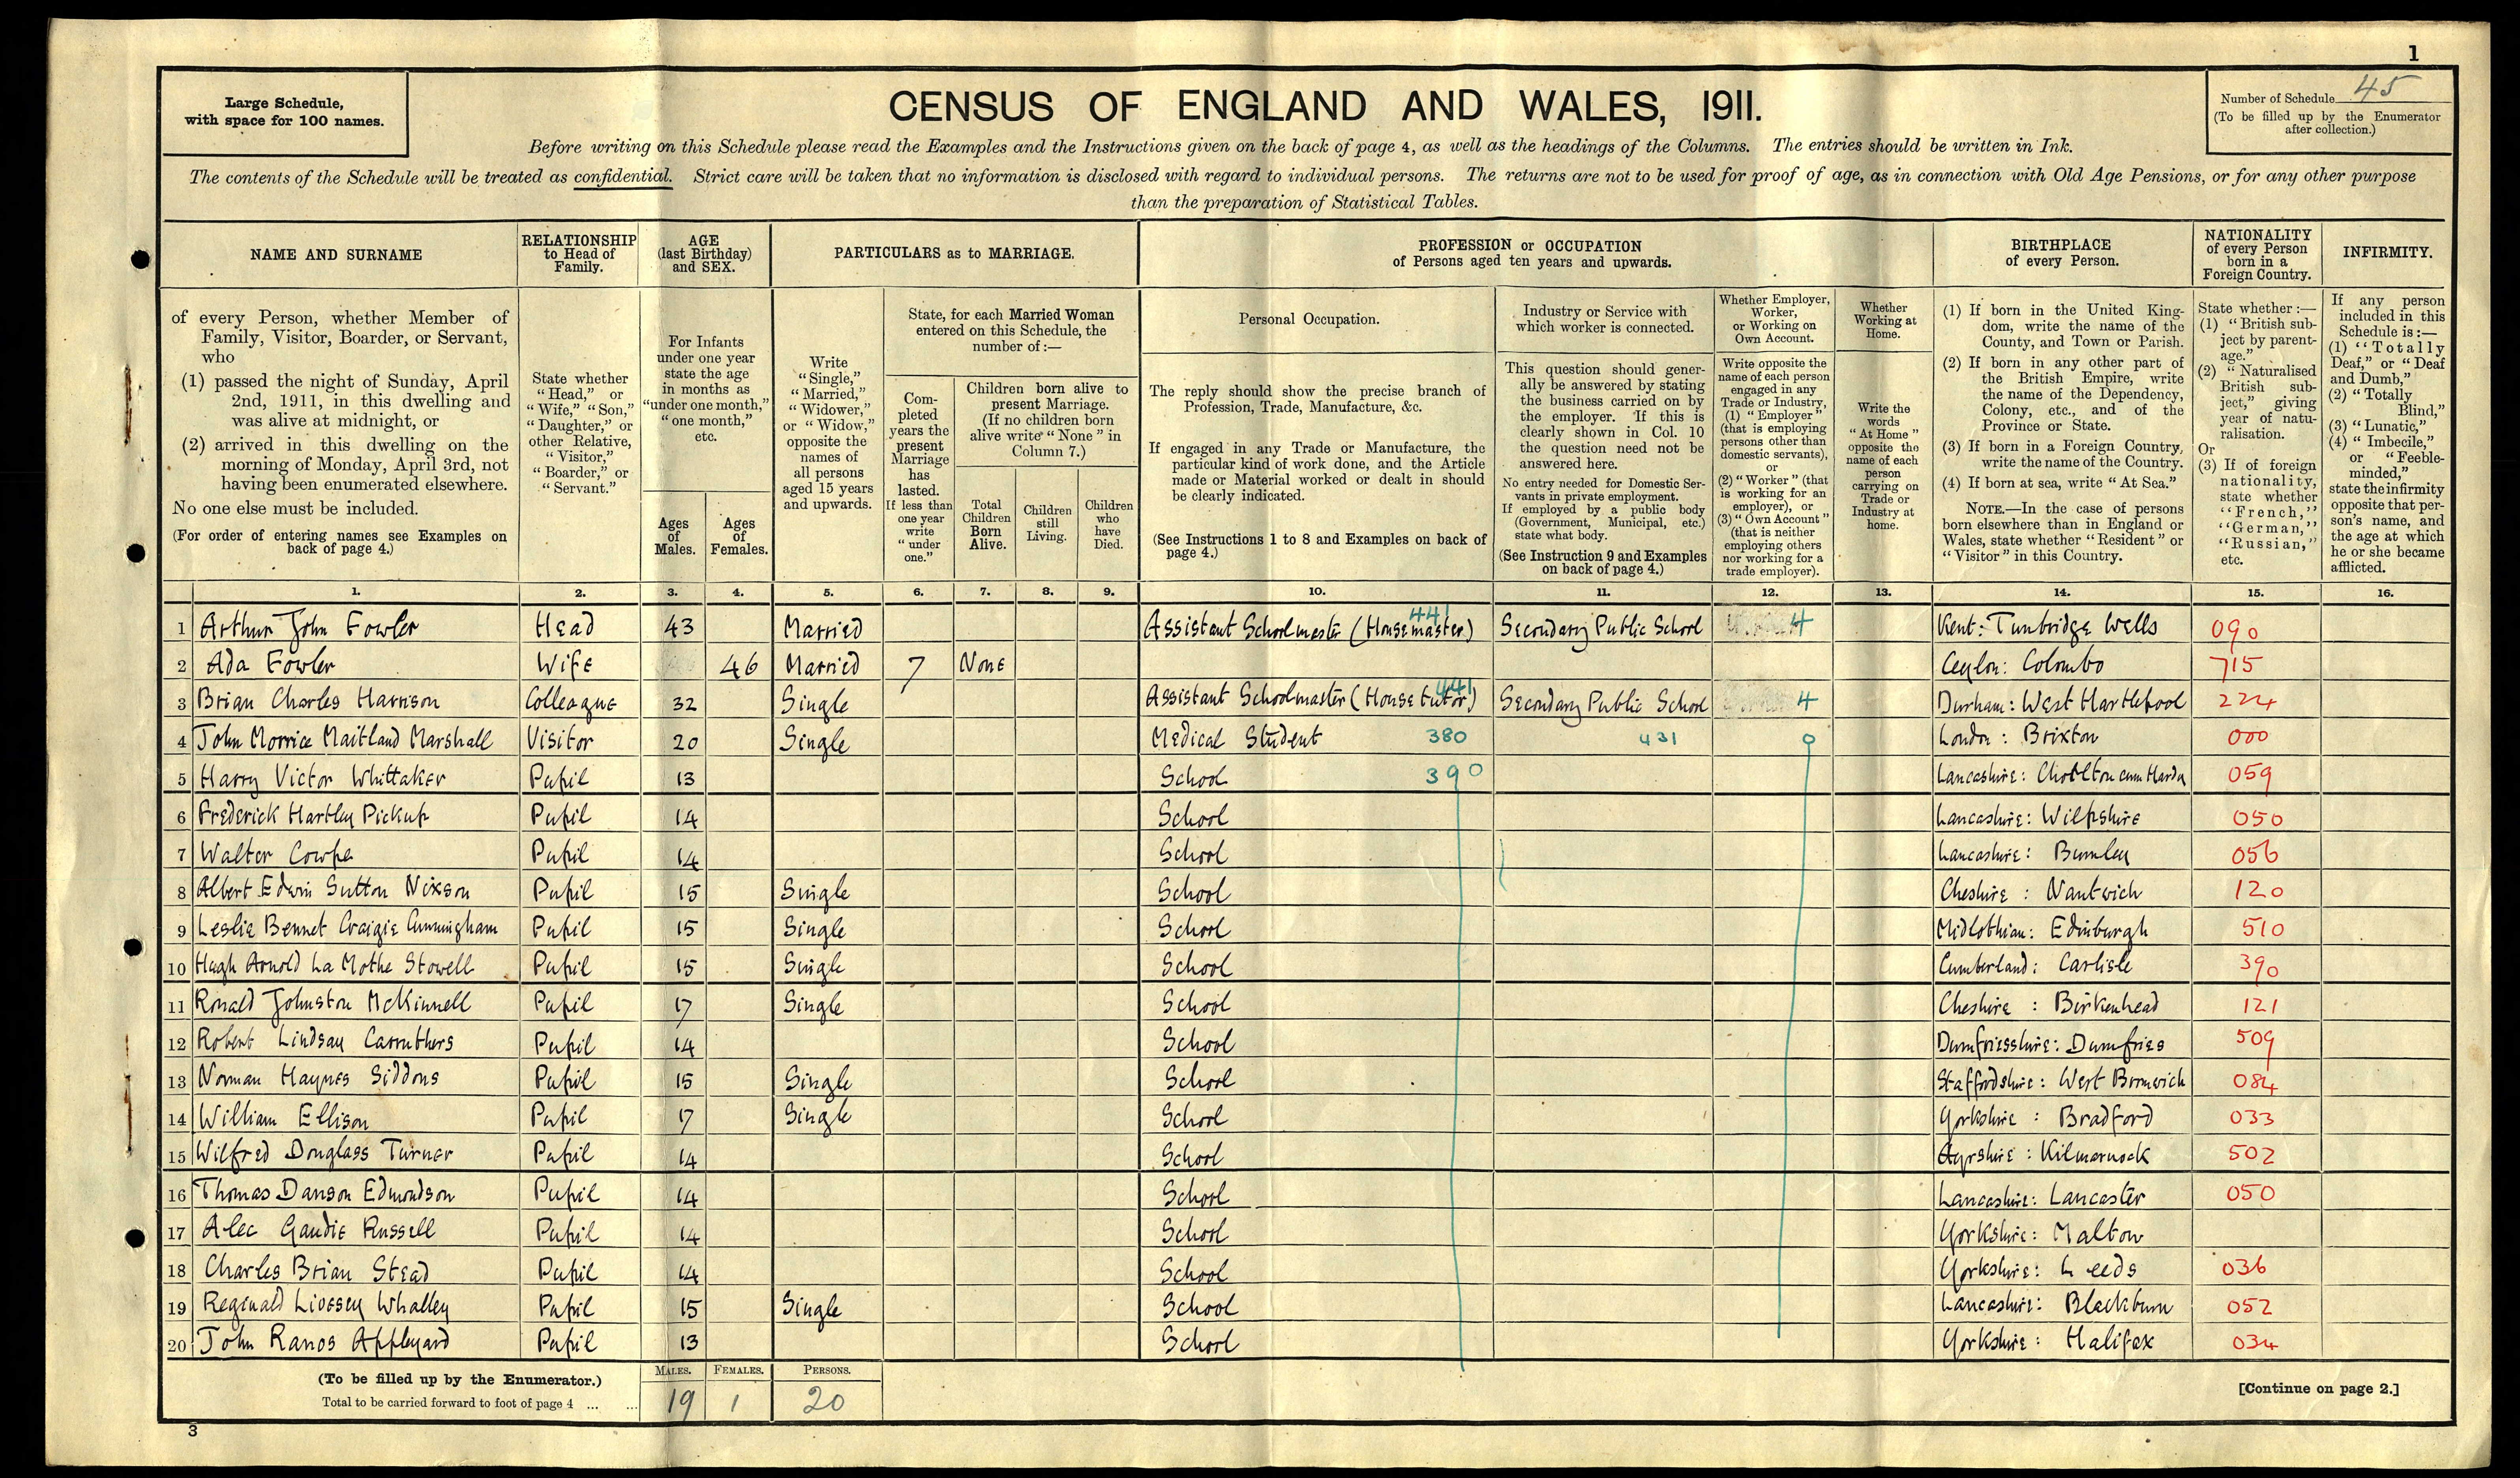 John Morrice Maitland Marshall on 1911 census